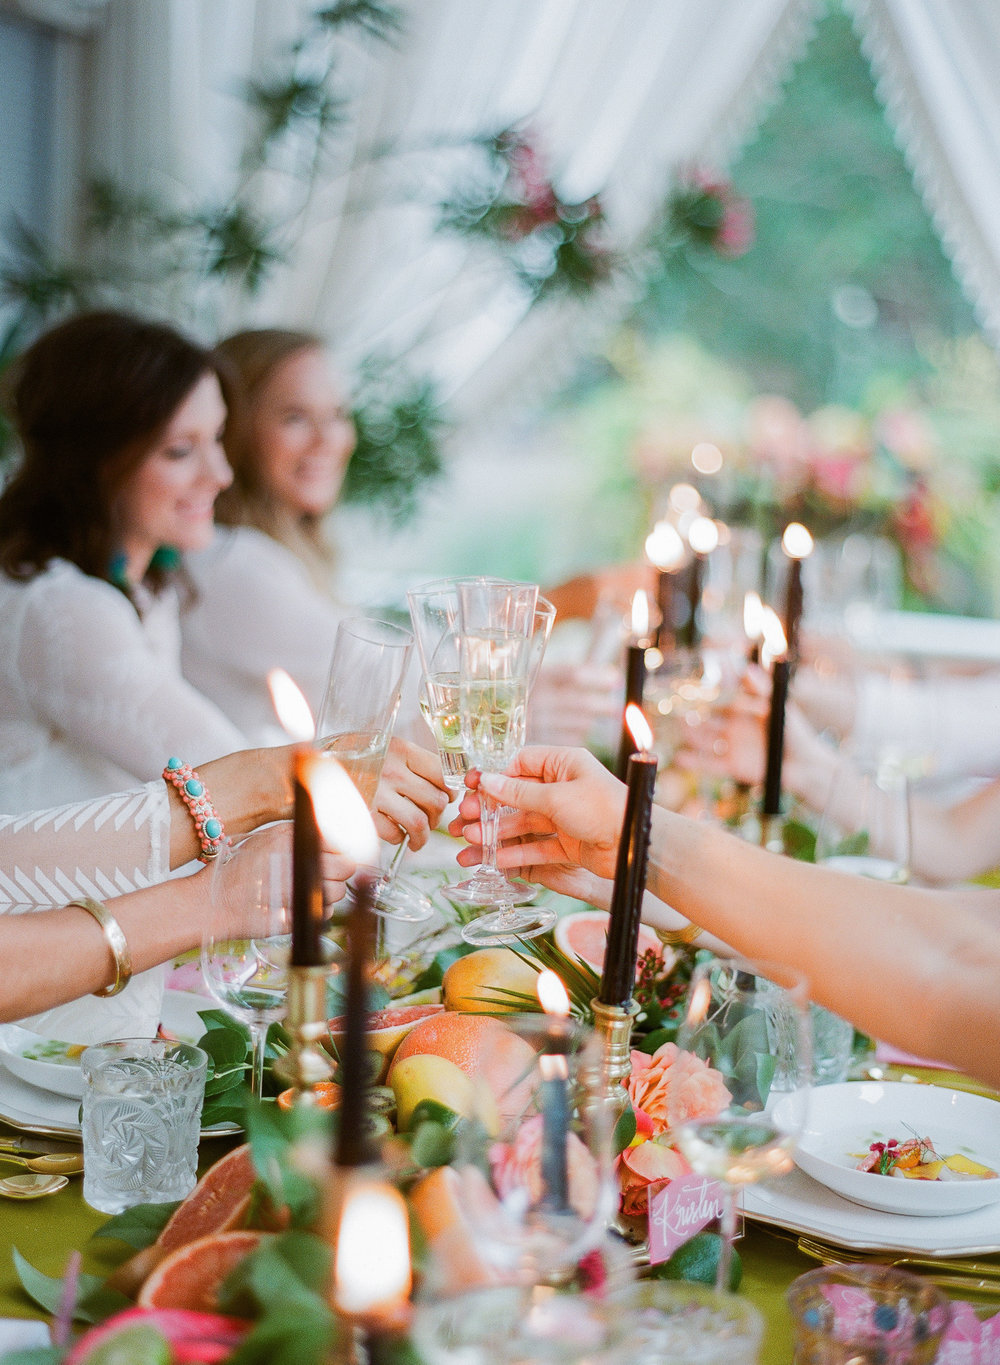 Charleston Porch Party, Events by Reagan, Dinner Party, Tropical Party, Charleston Event Planner , Table Decor,  Champagne Toast